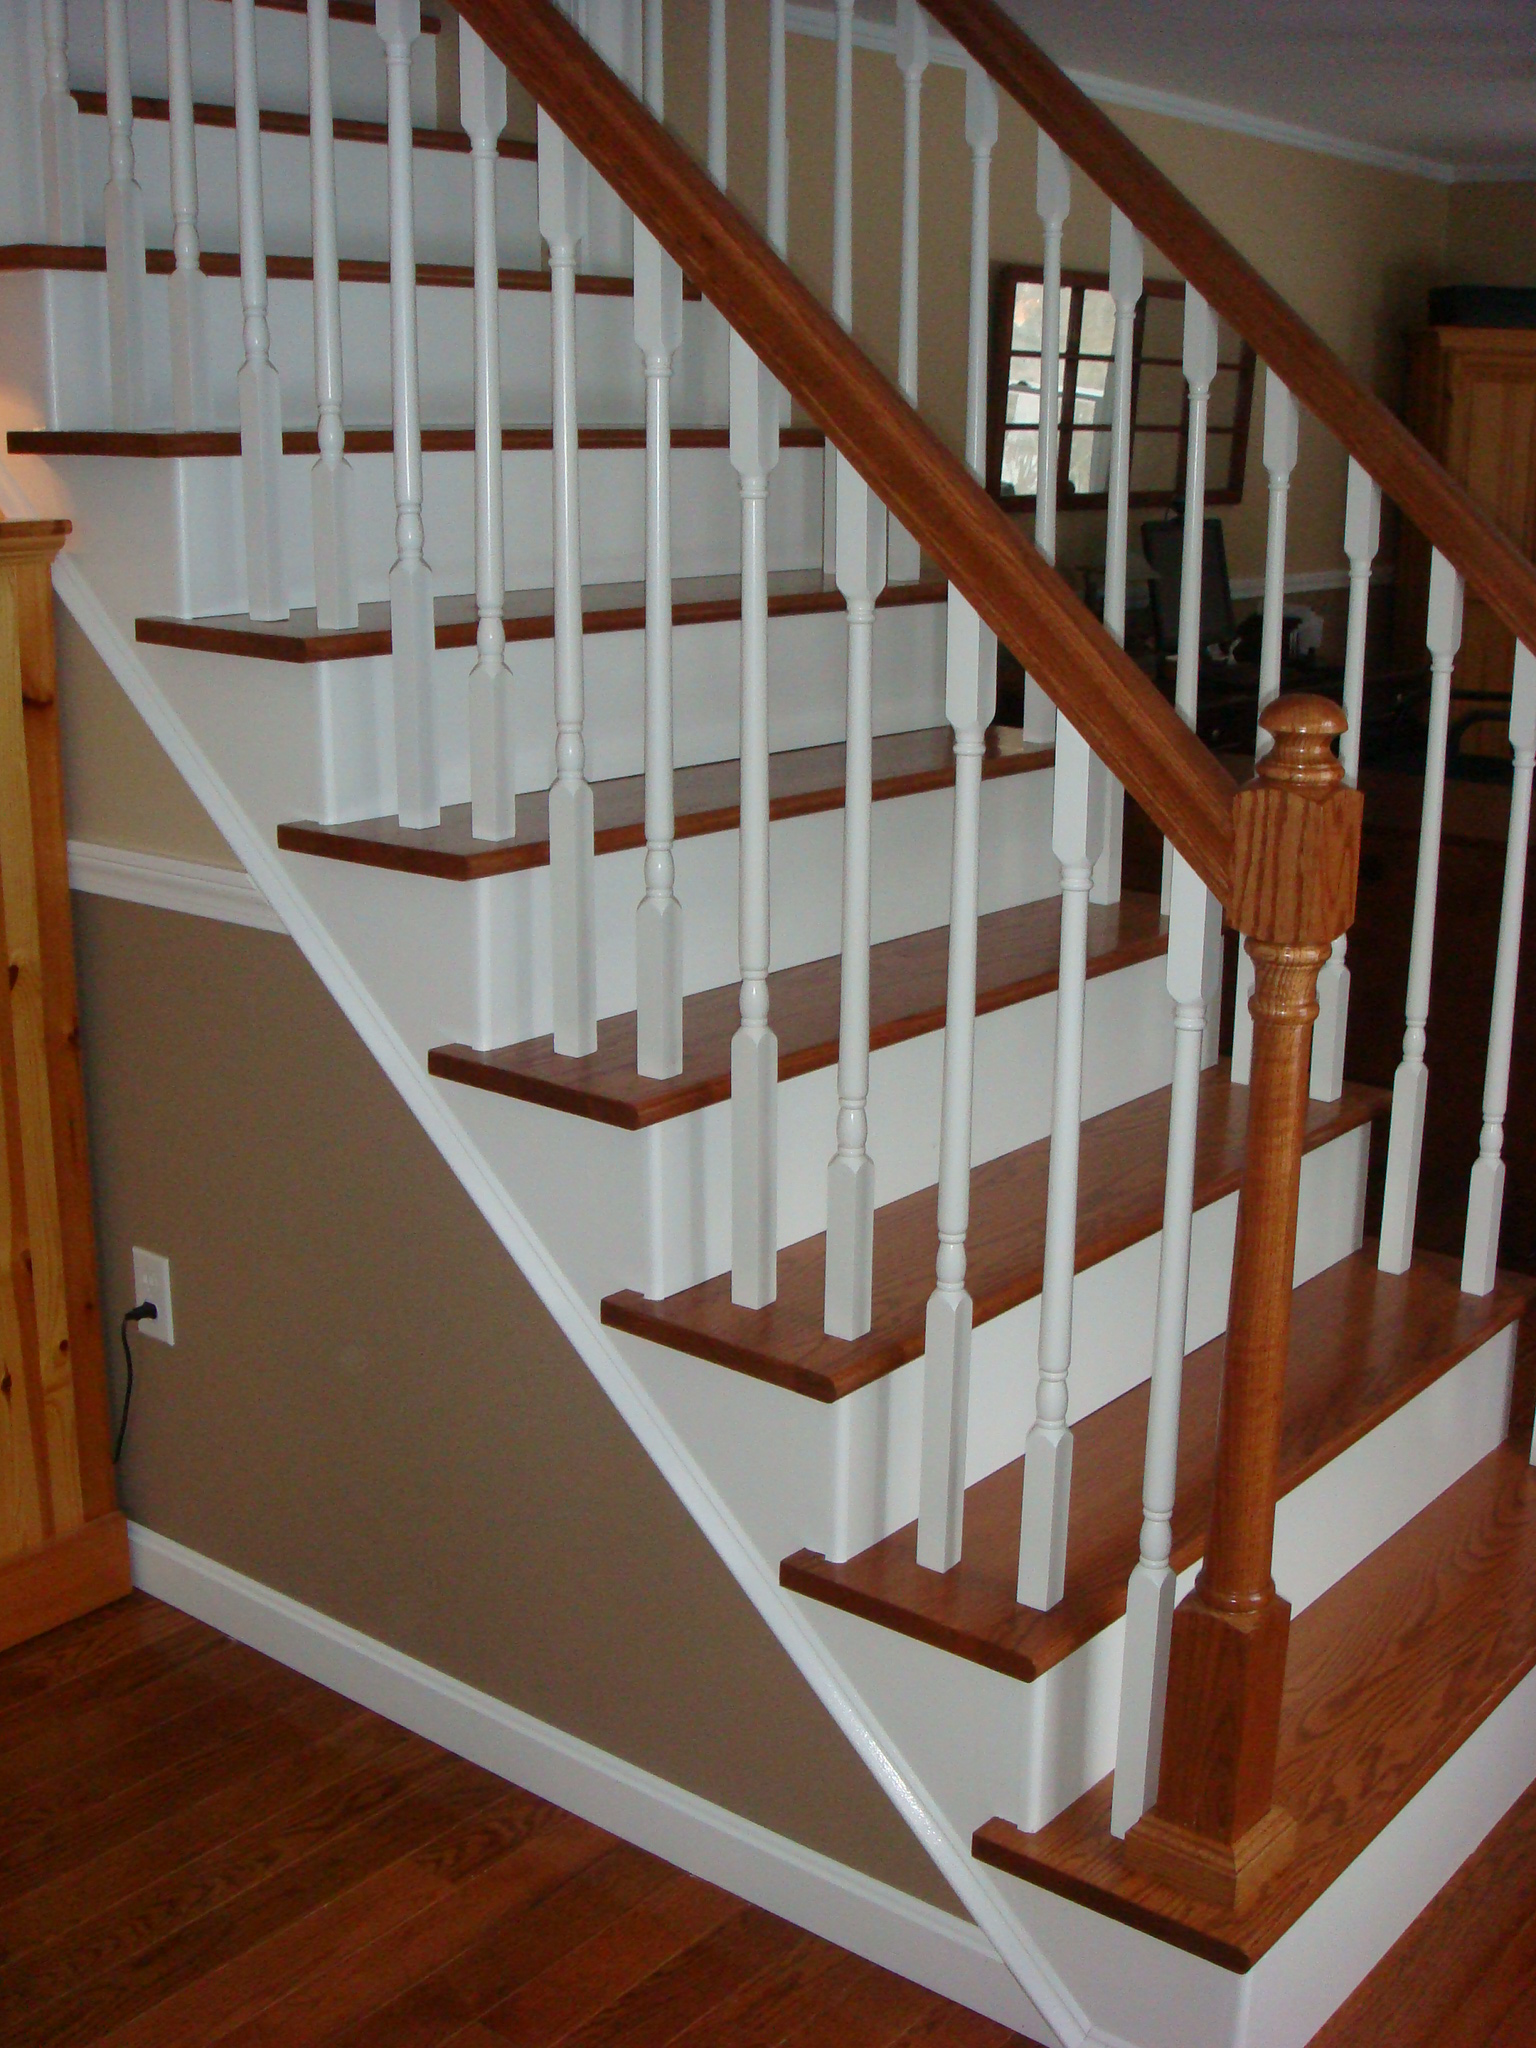 Mesmerizing Remodelaholic From Carpet To Wooden Stair Guest Remodel How To Re Carpet Stairs How To Carpet Stairs Cheaply houzz 01 How To Carpet Stairs